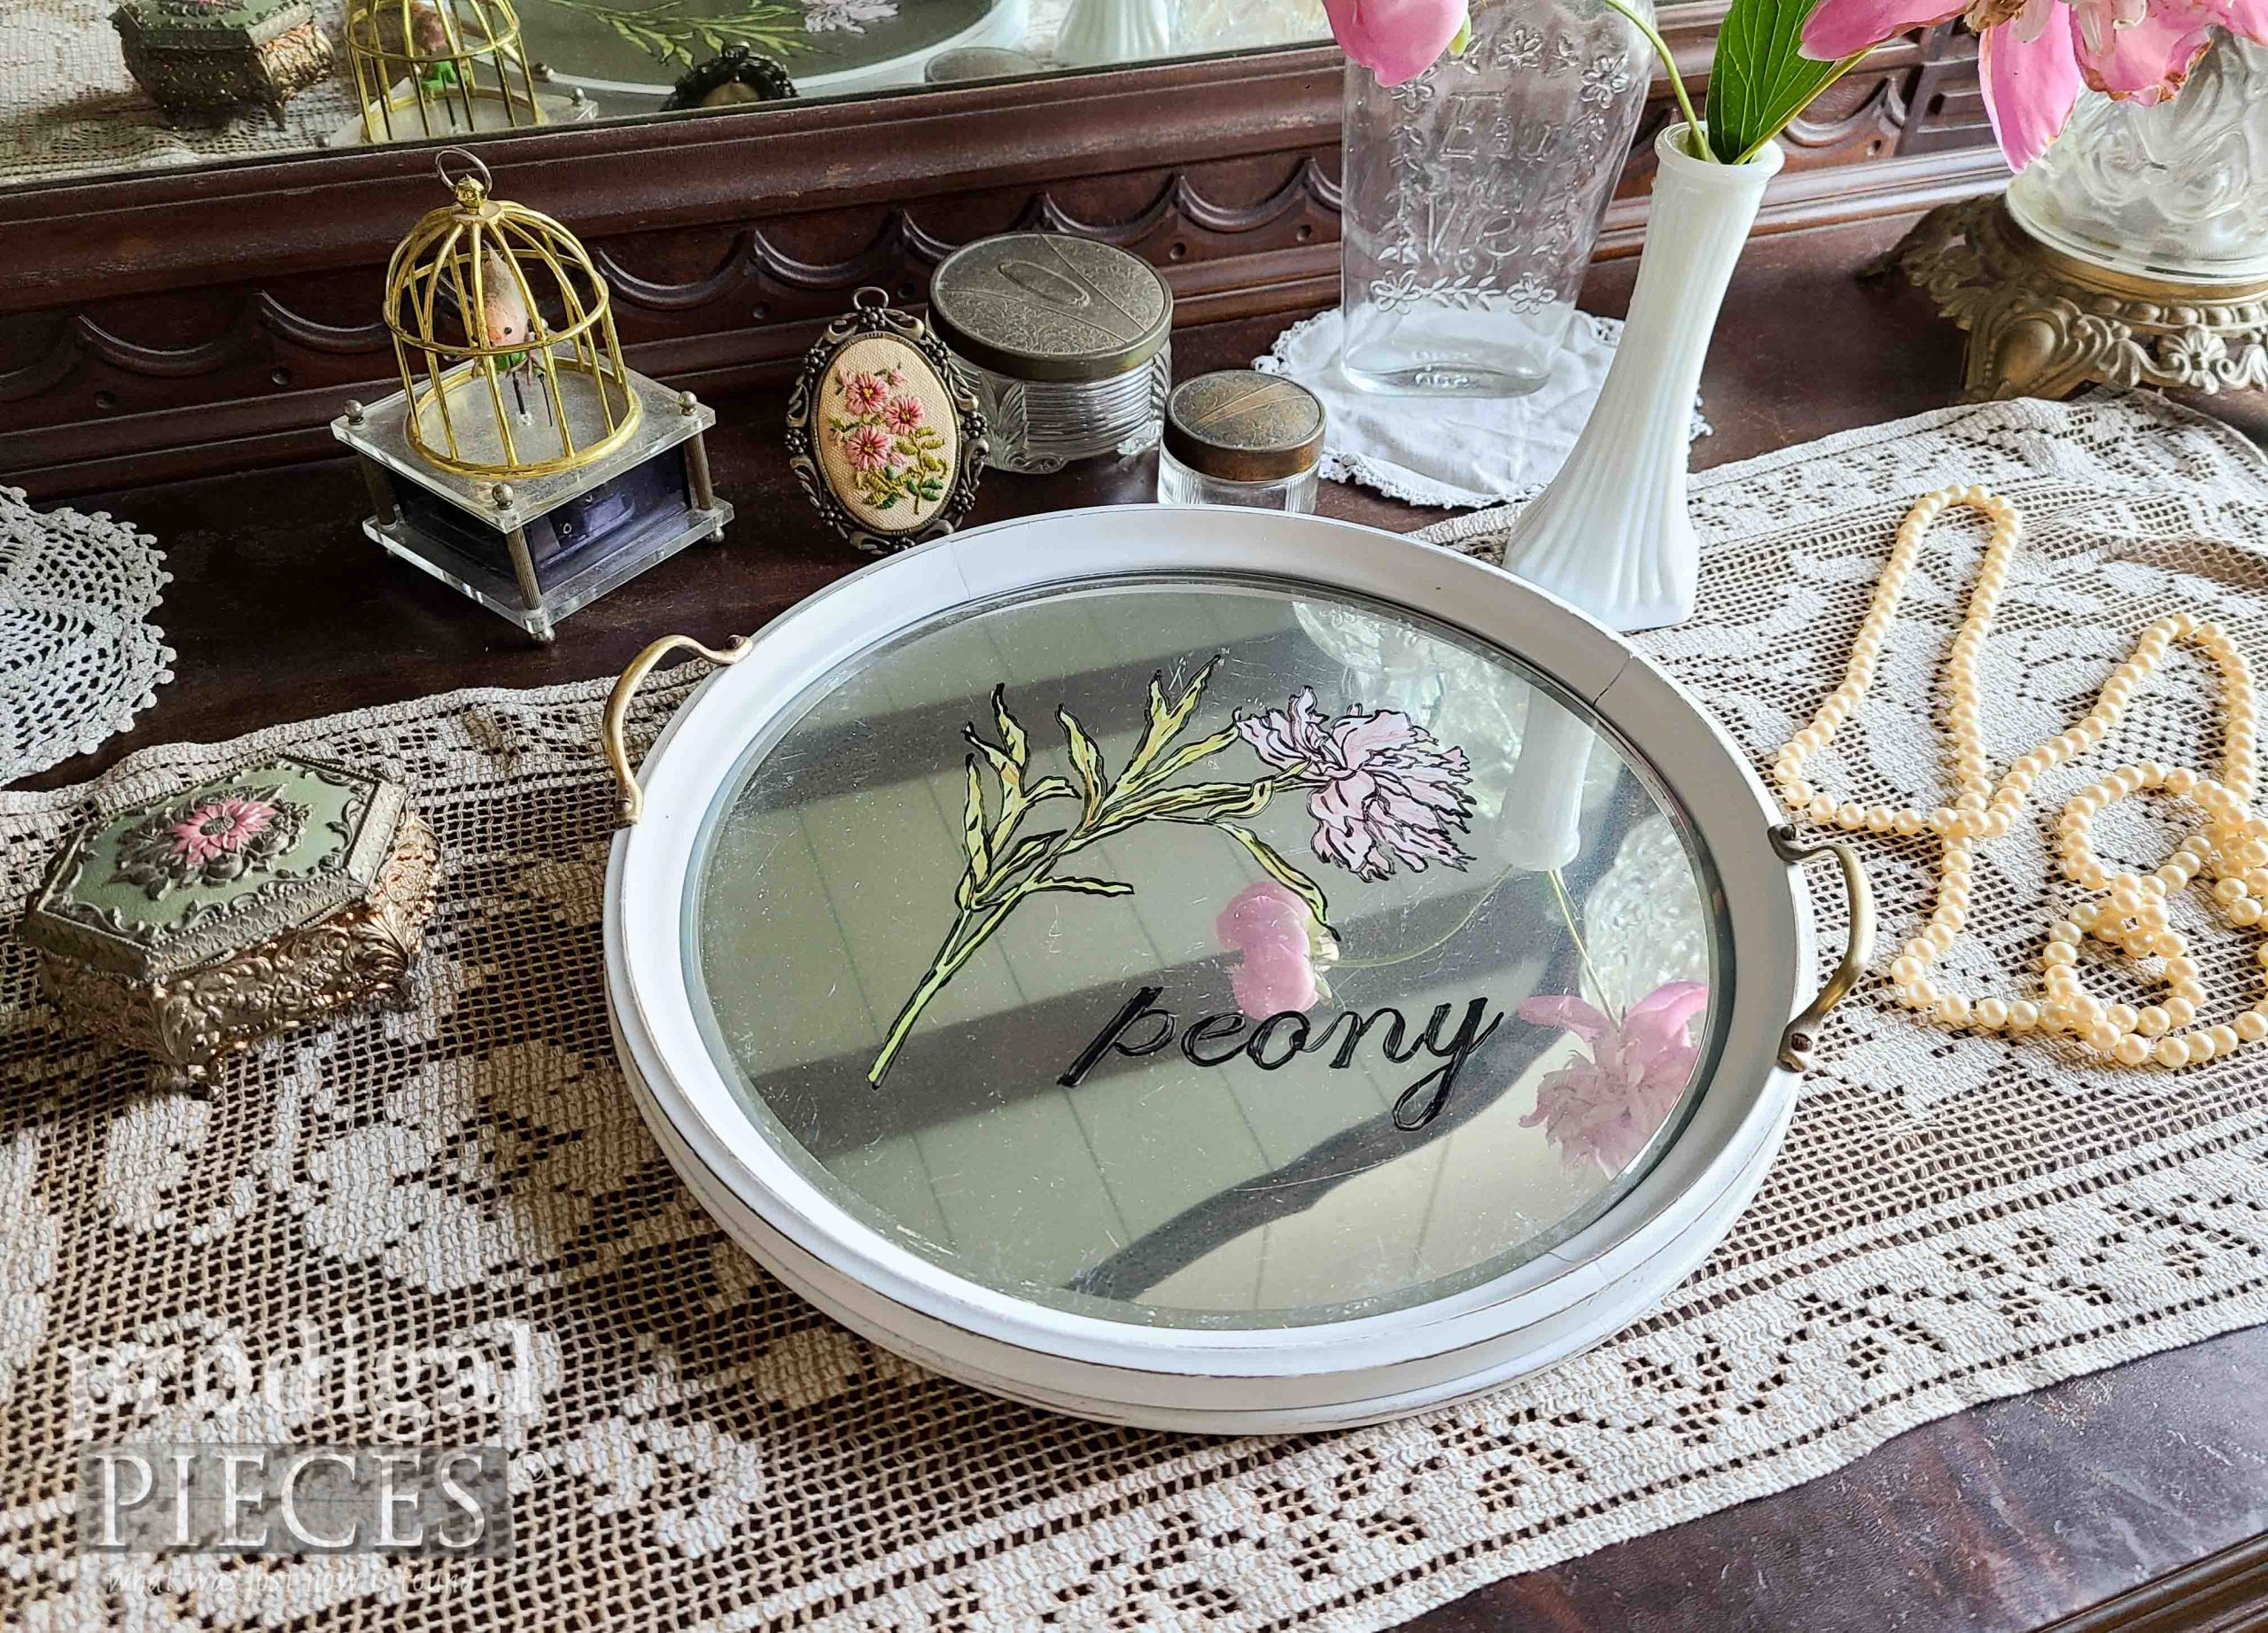 Shabby Chic Hand-Painted Peony Round Glass Serving Tray by Larissa of Prodigal Pieces | prodigalpieces.com #prodigalpieces #peony #tray #home